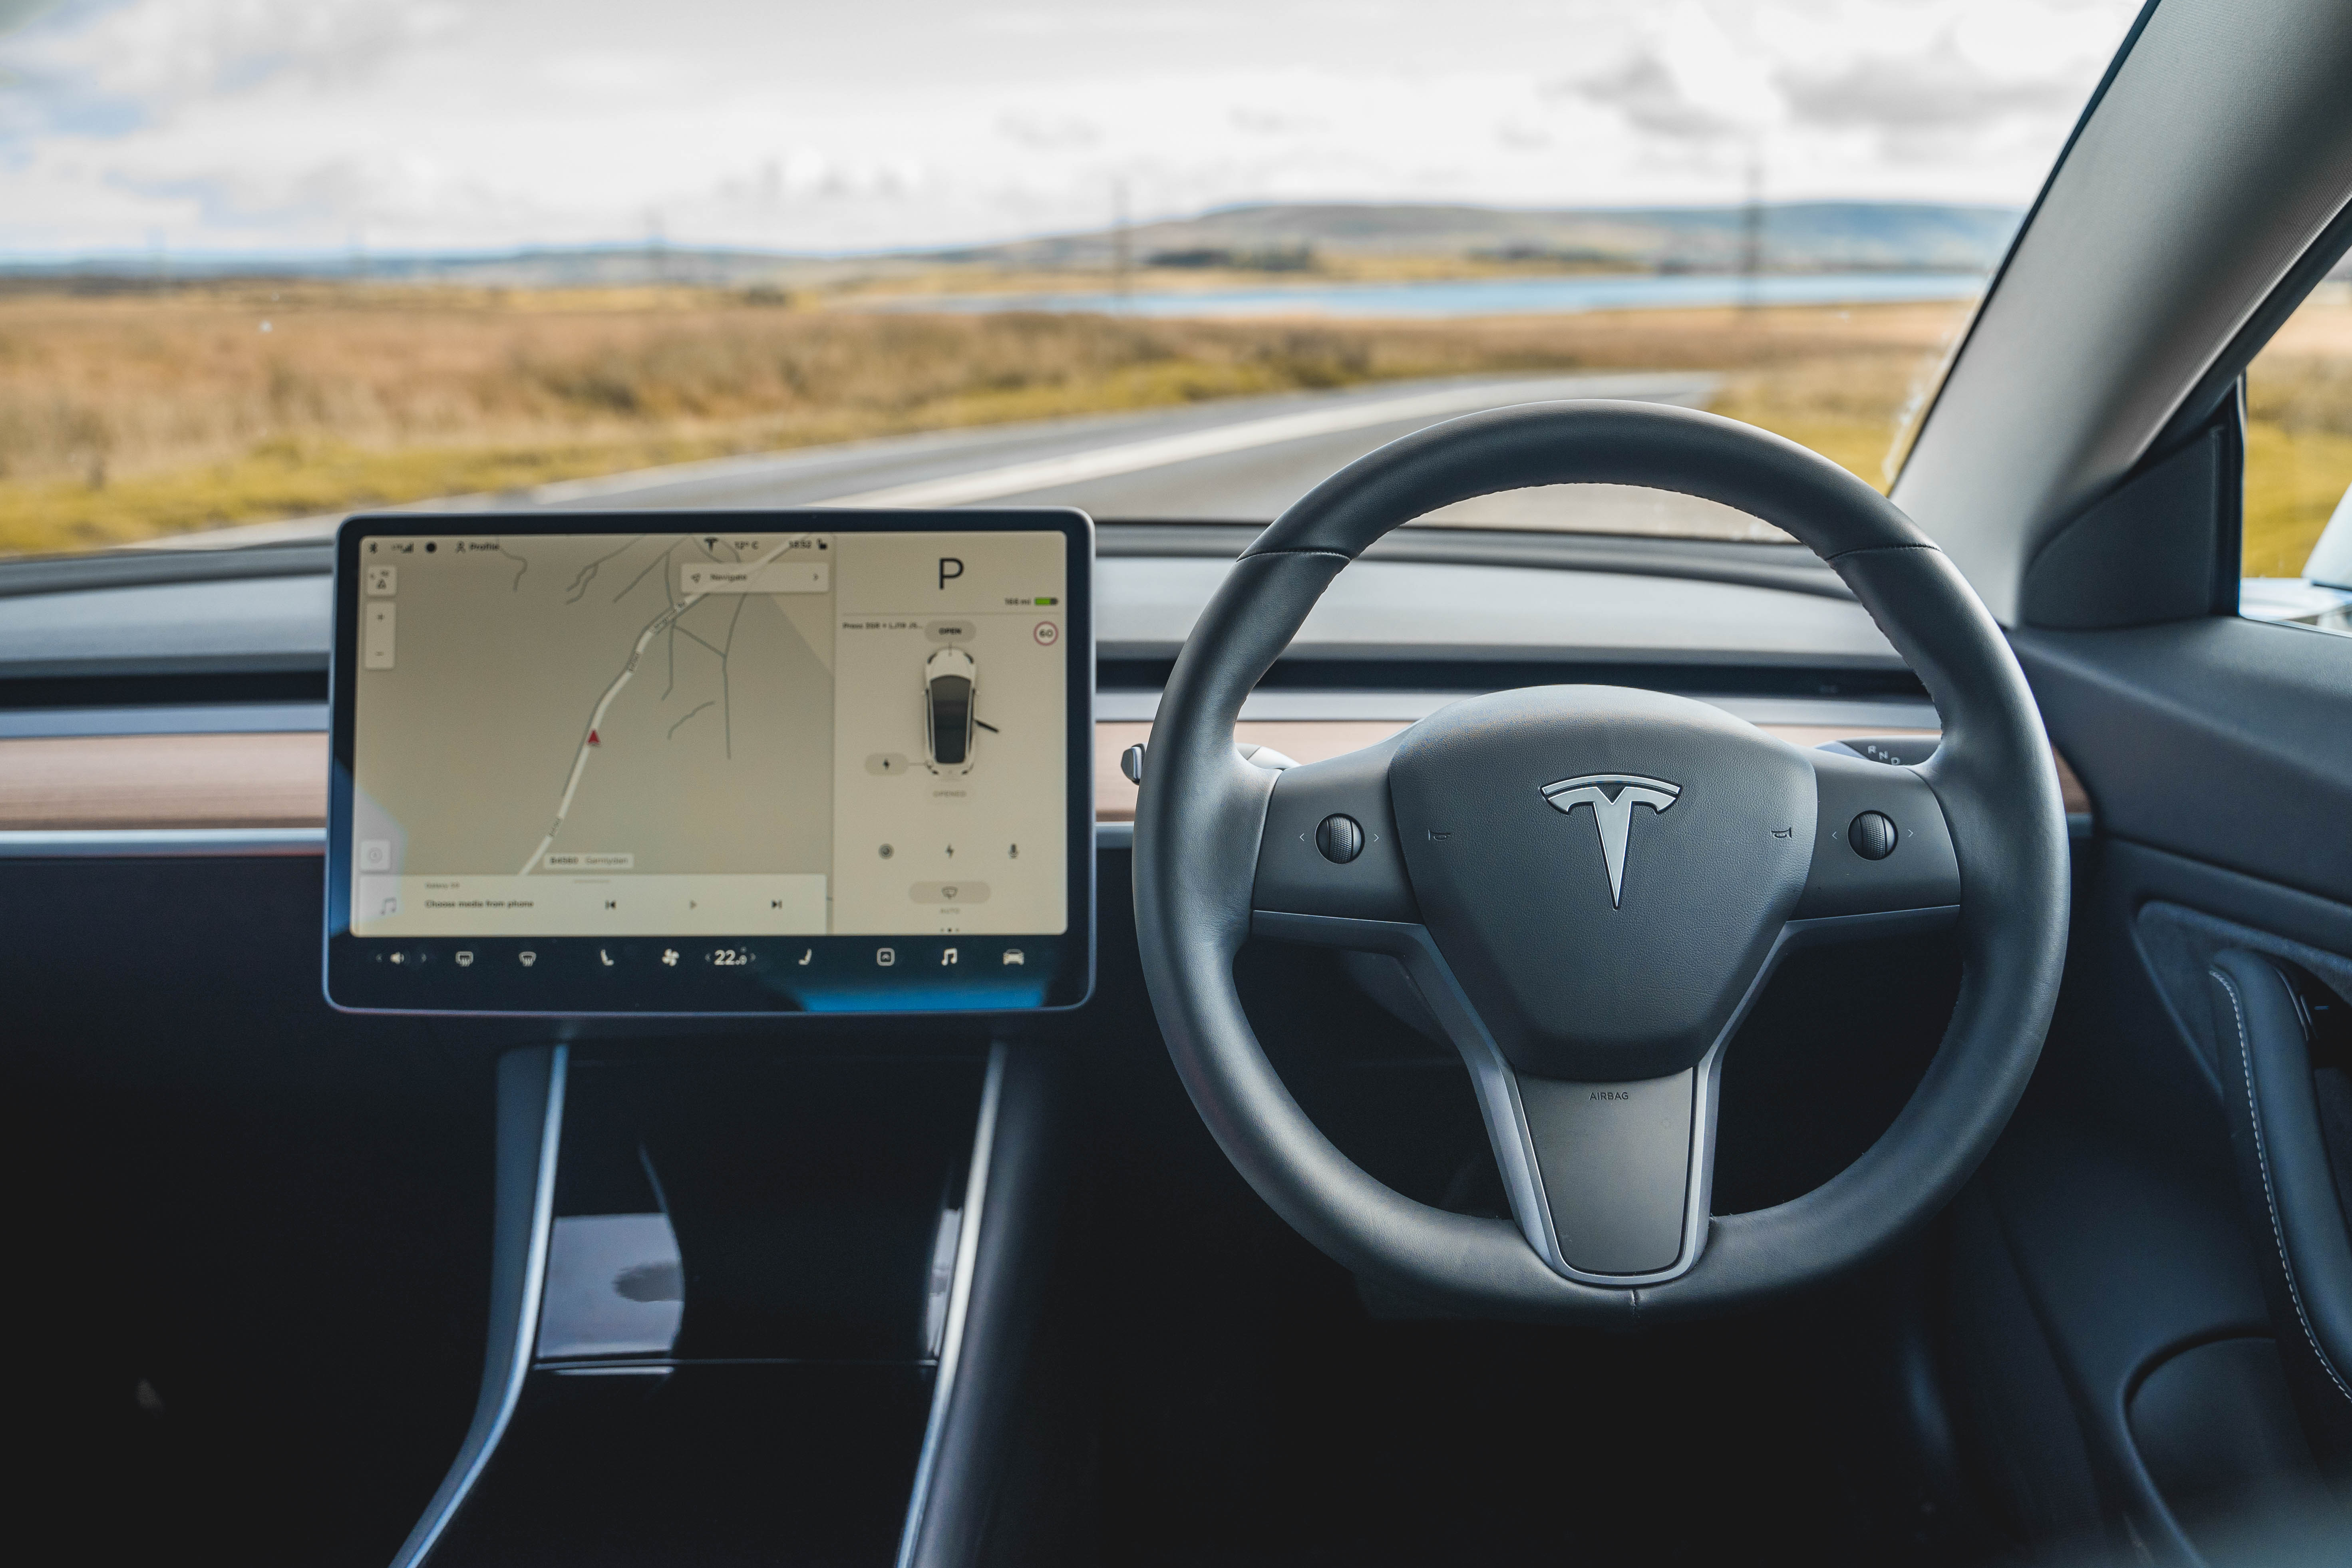 The interior of the Model 3 is dominated by the screen